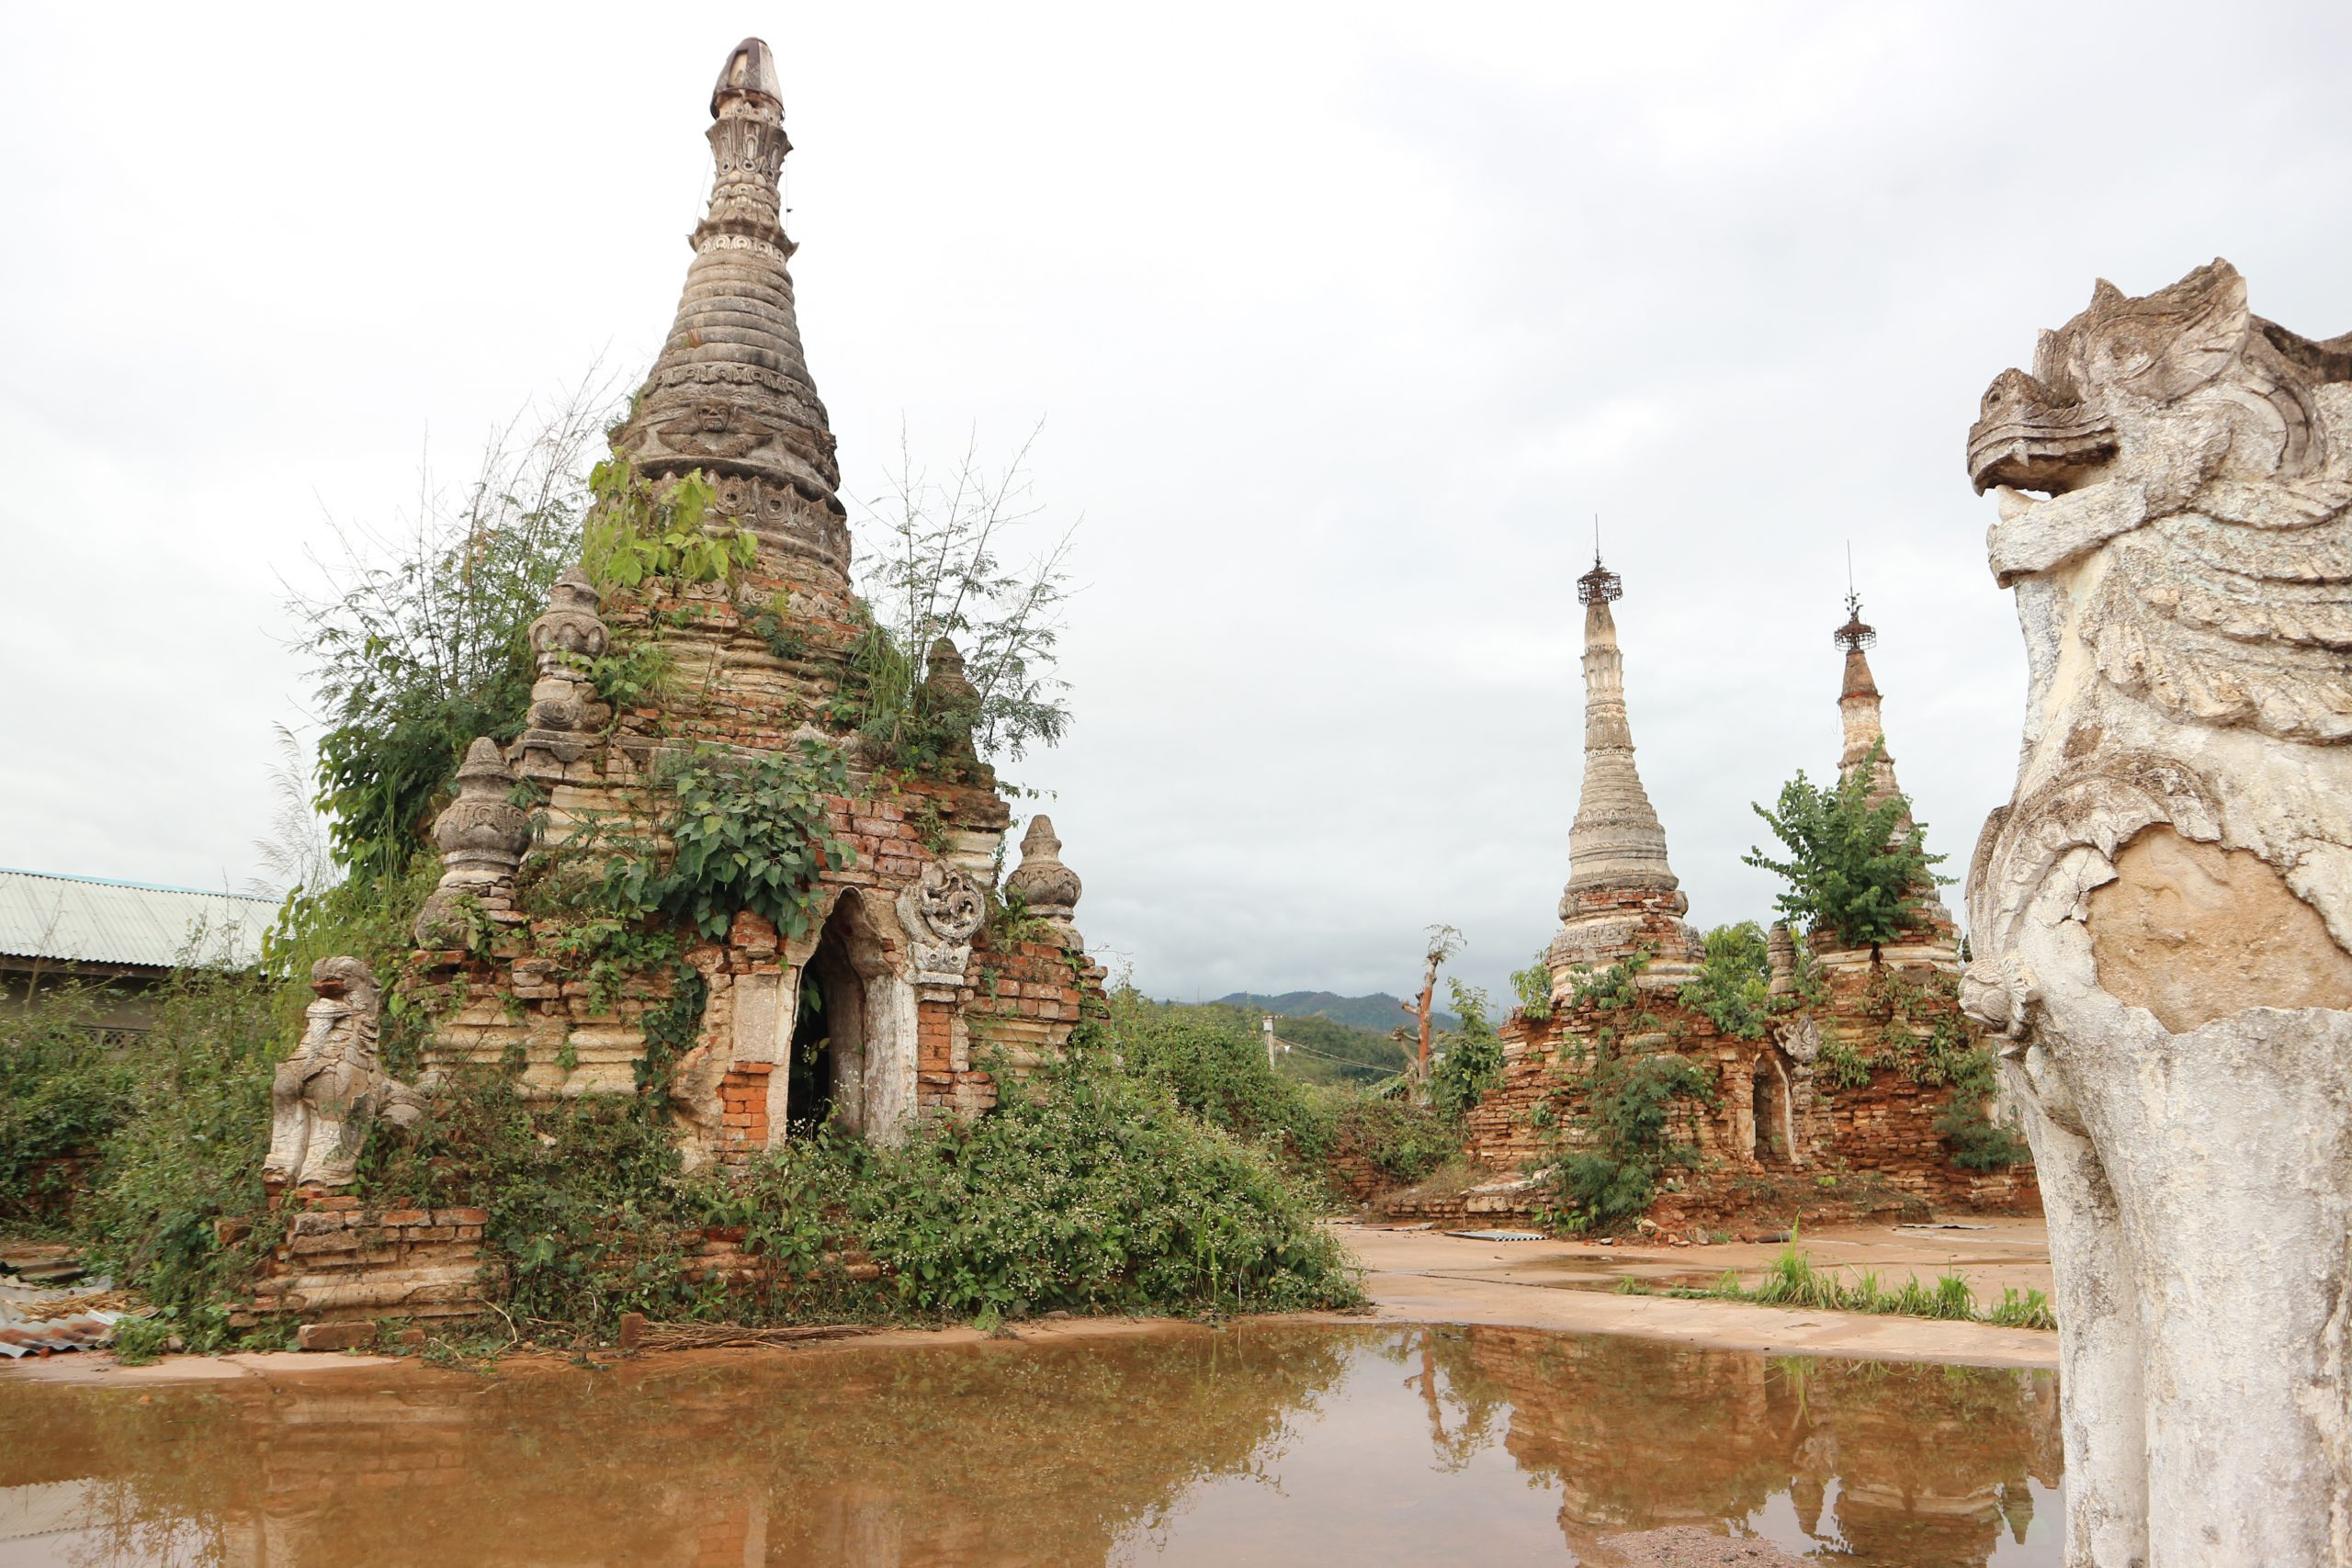 Exploring Hsipaw by bicycle